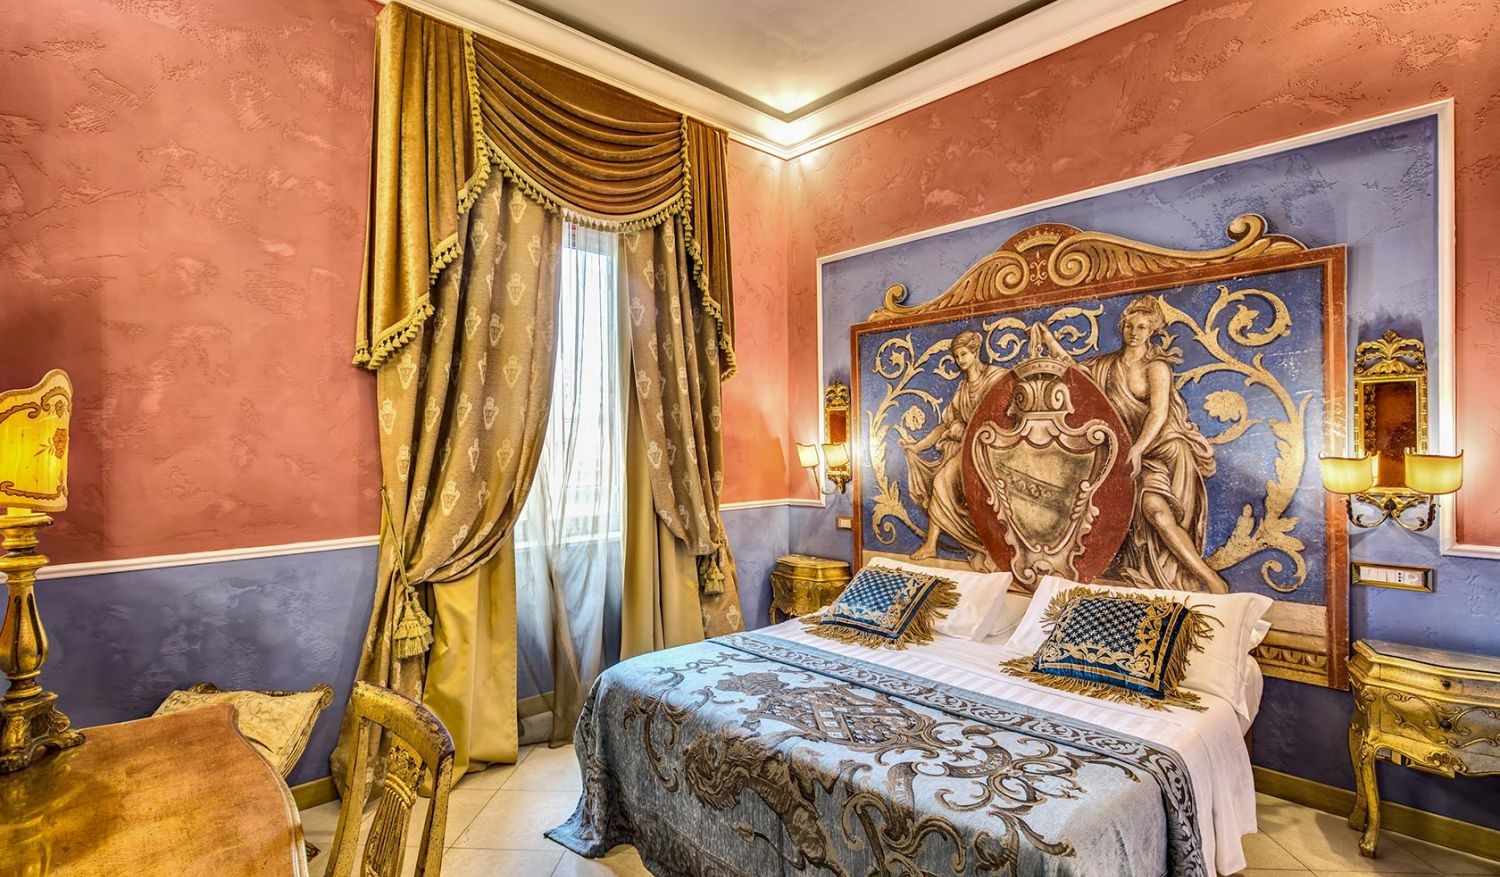 Rooms for family holidays in Rome